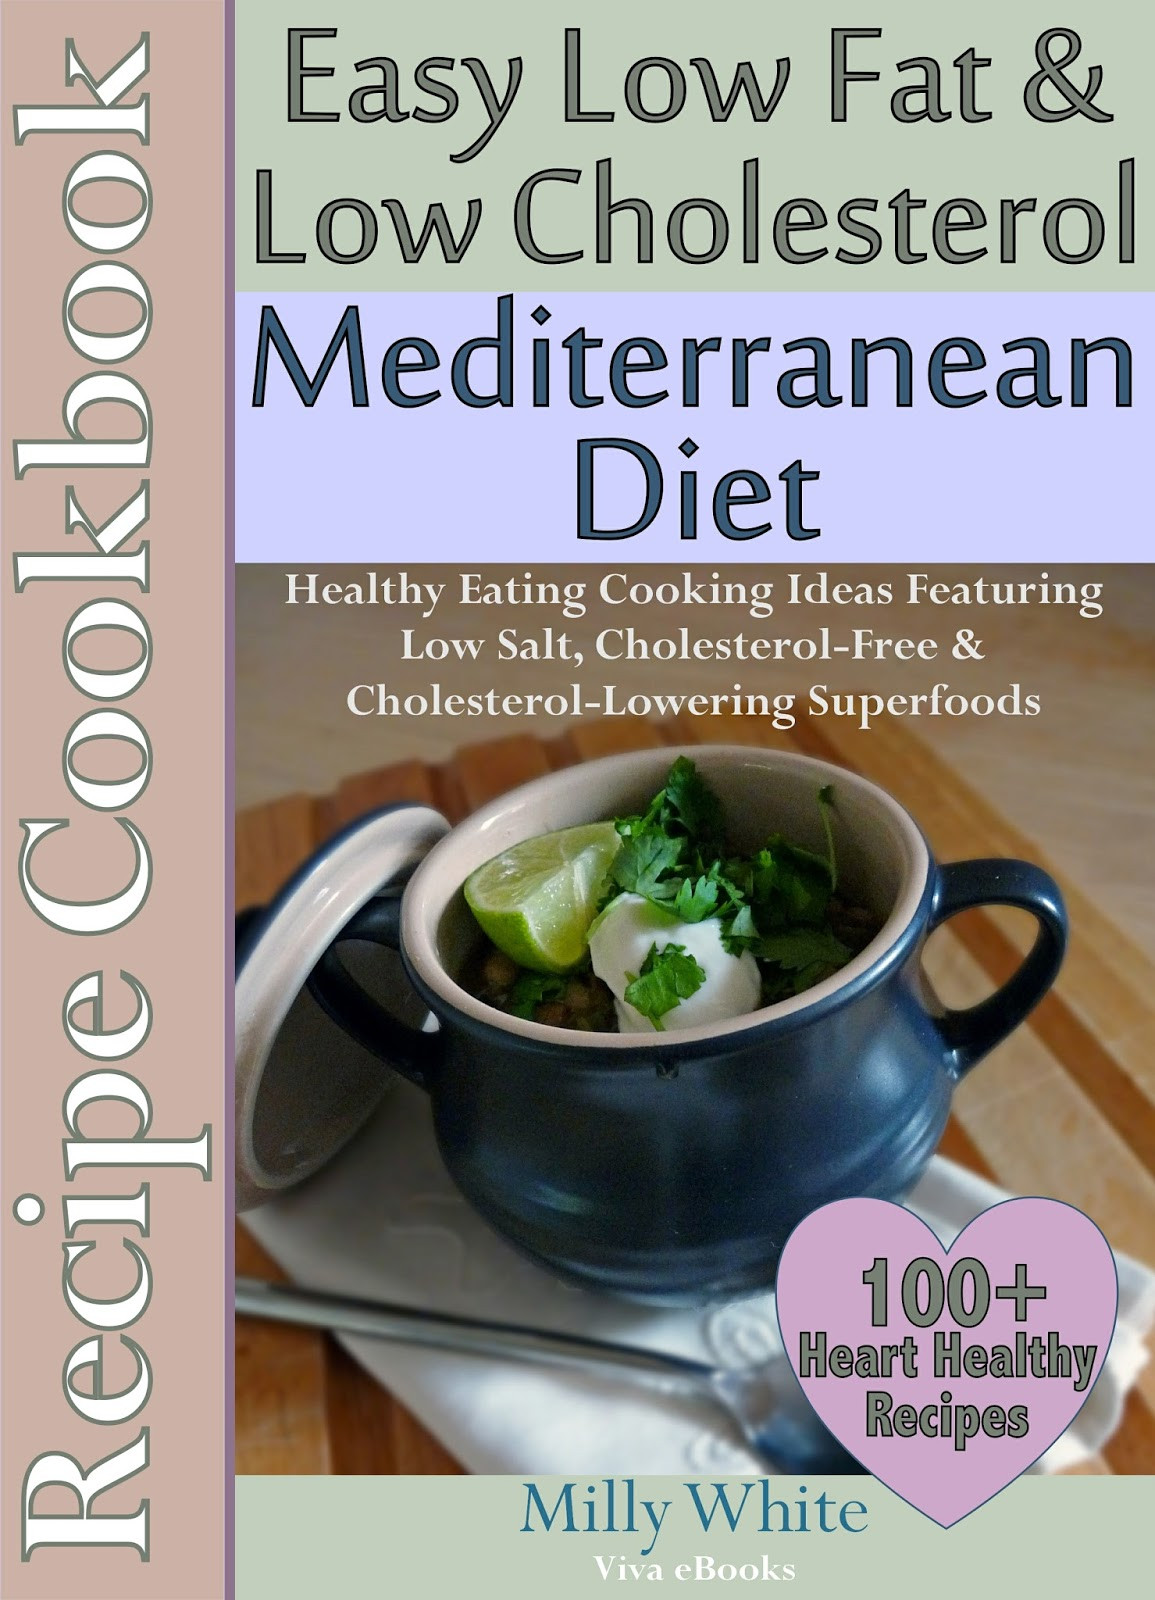 Low Cholesterol Food Recipes  Dips Delectus Cholesterol The Silent Killer for